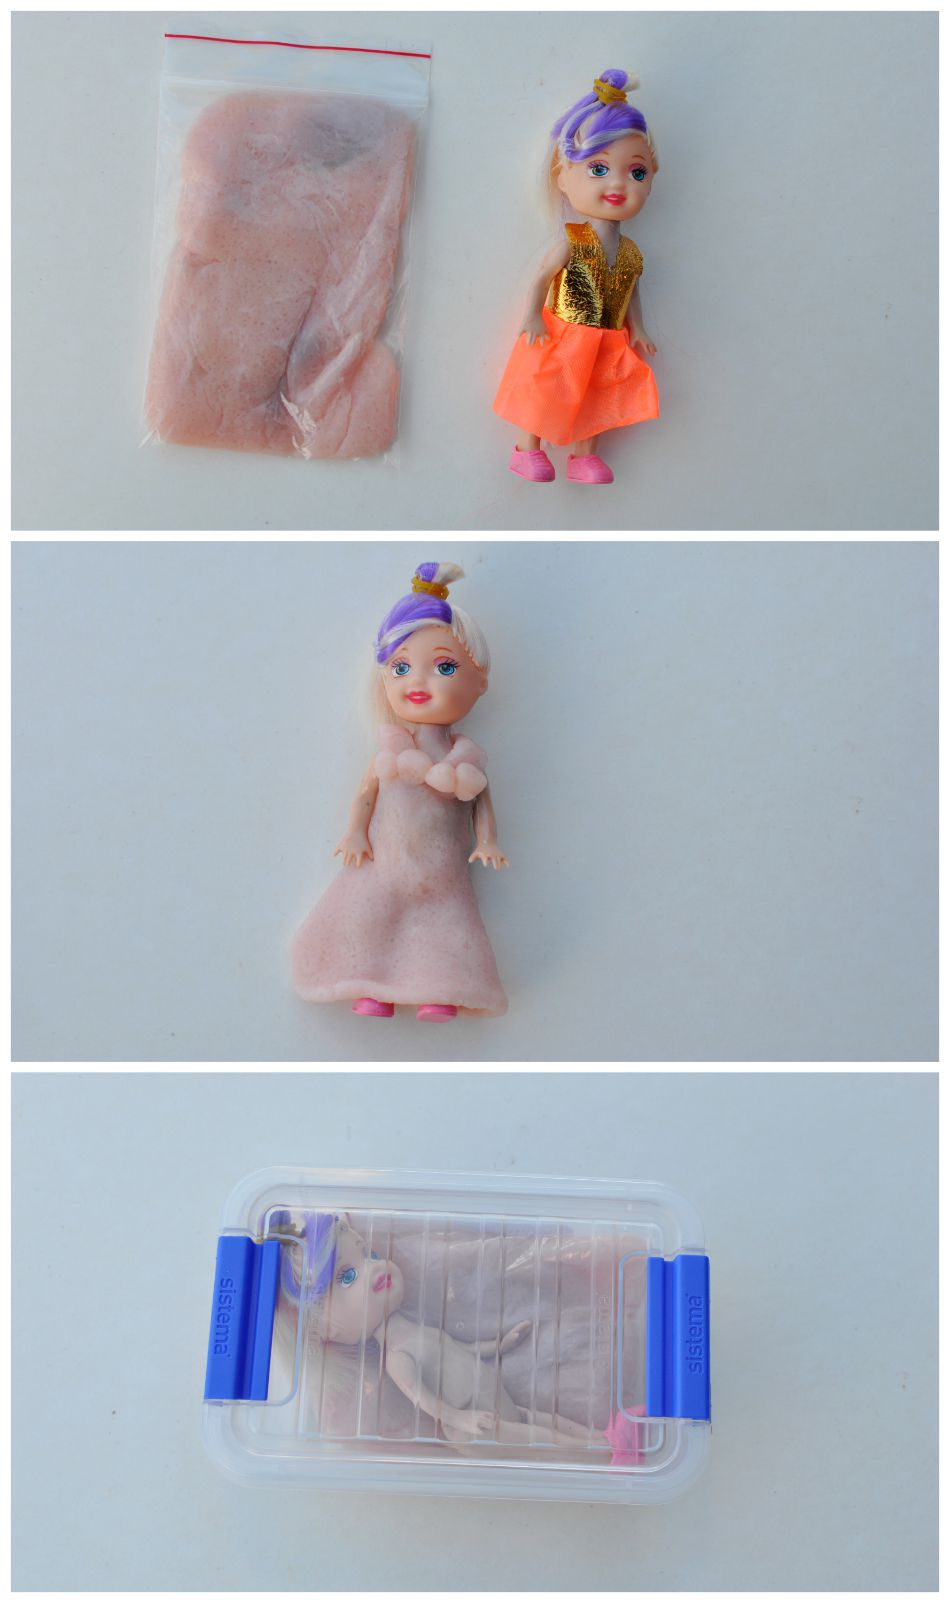 Fun things to put in your handbag - doll and play dough